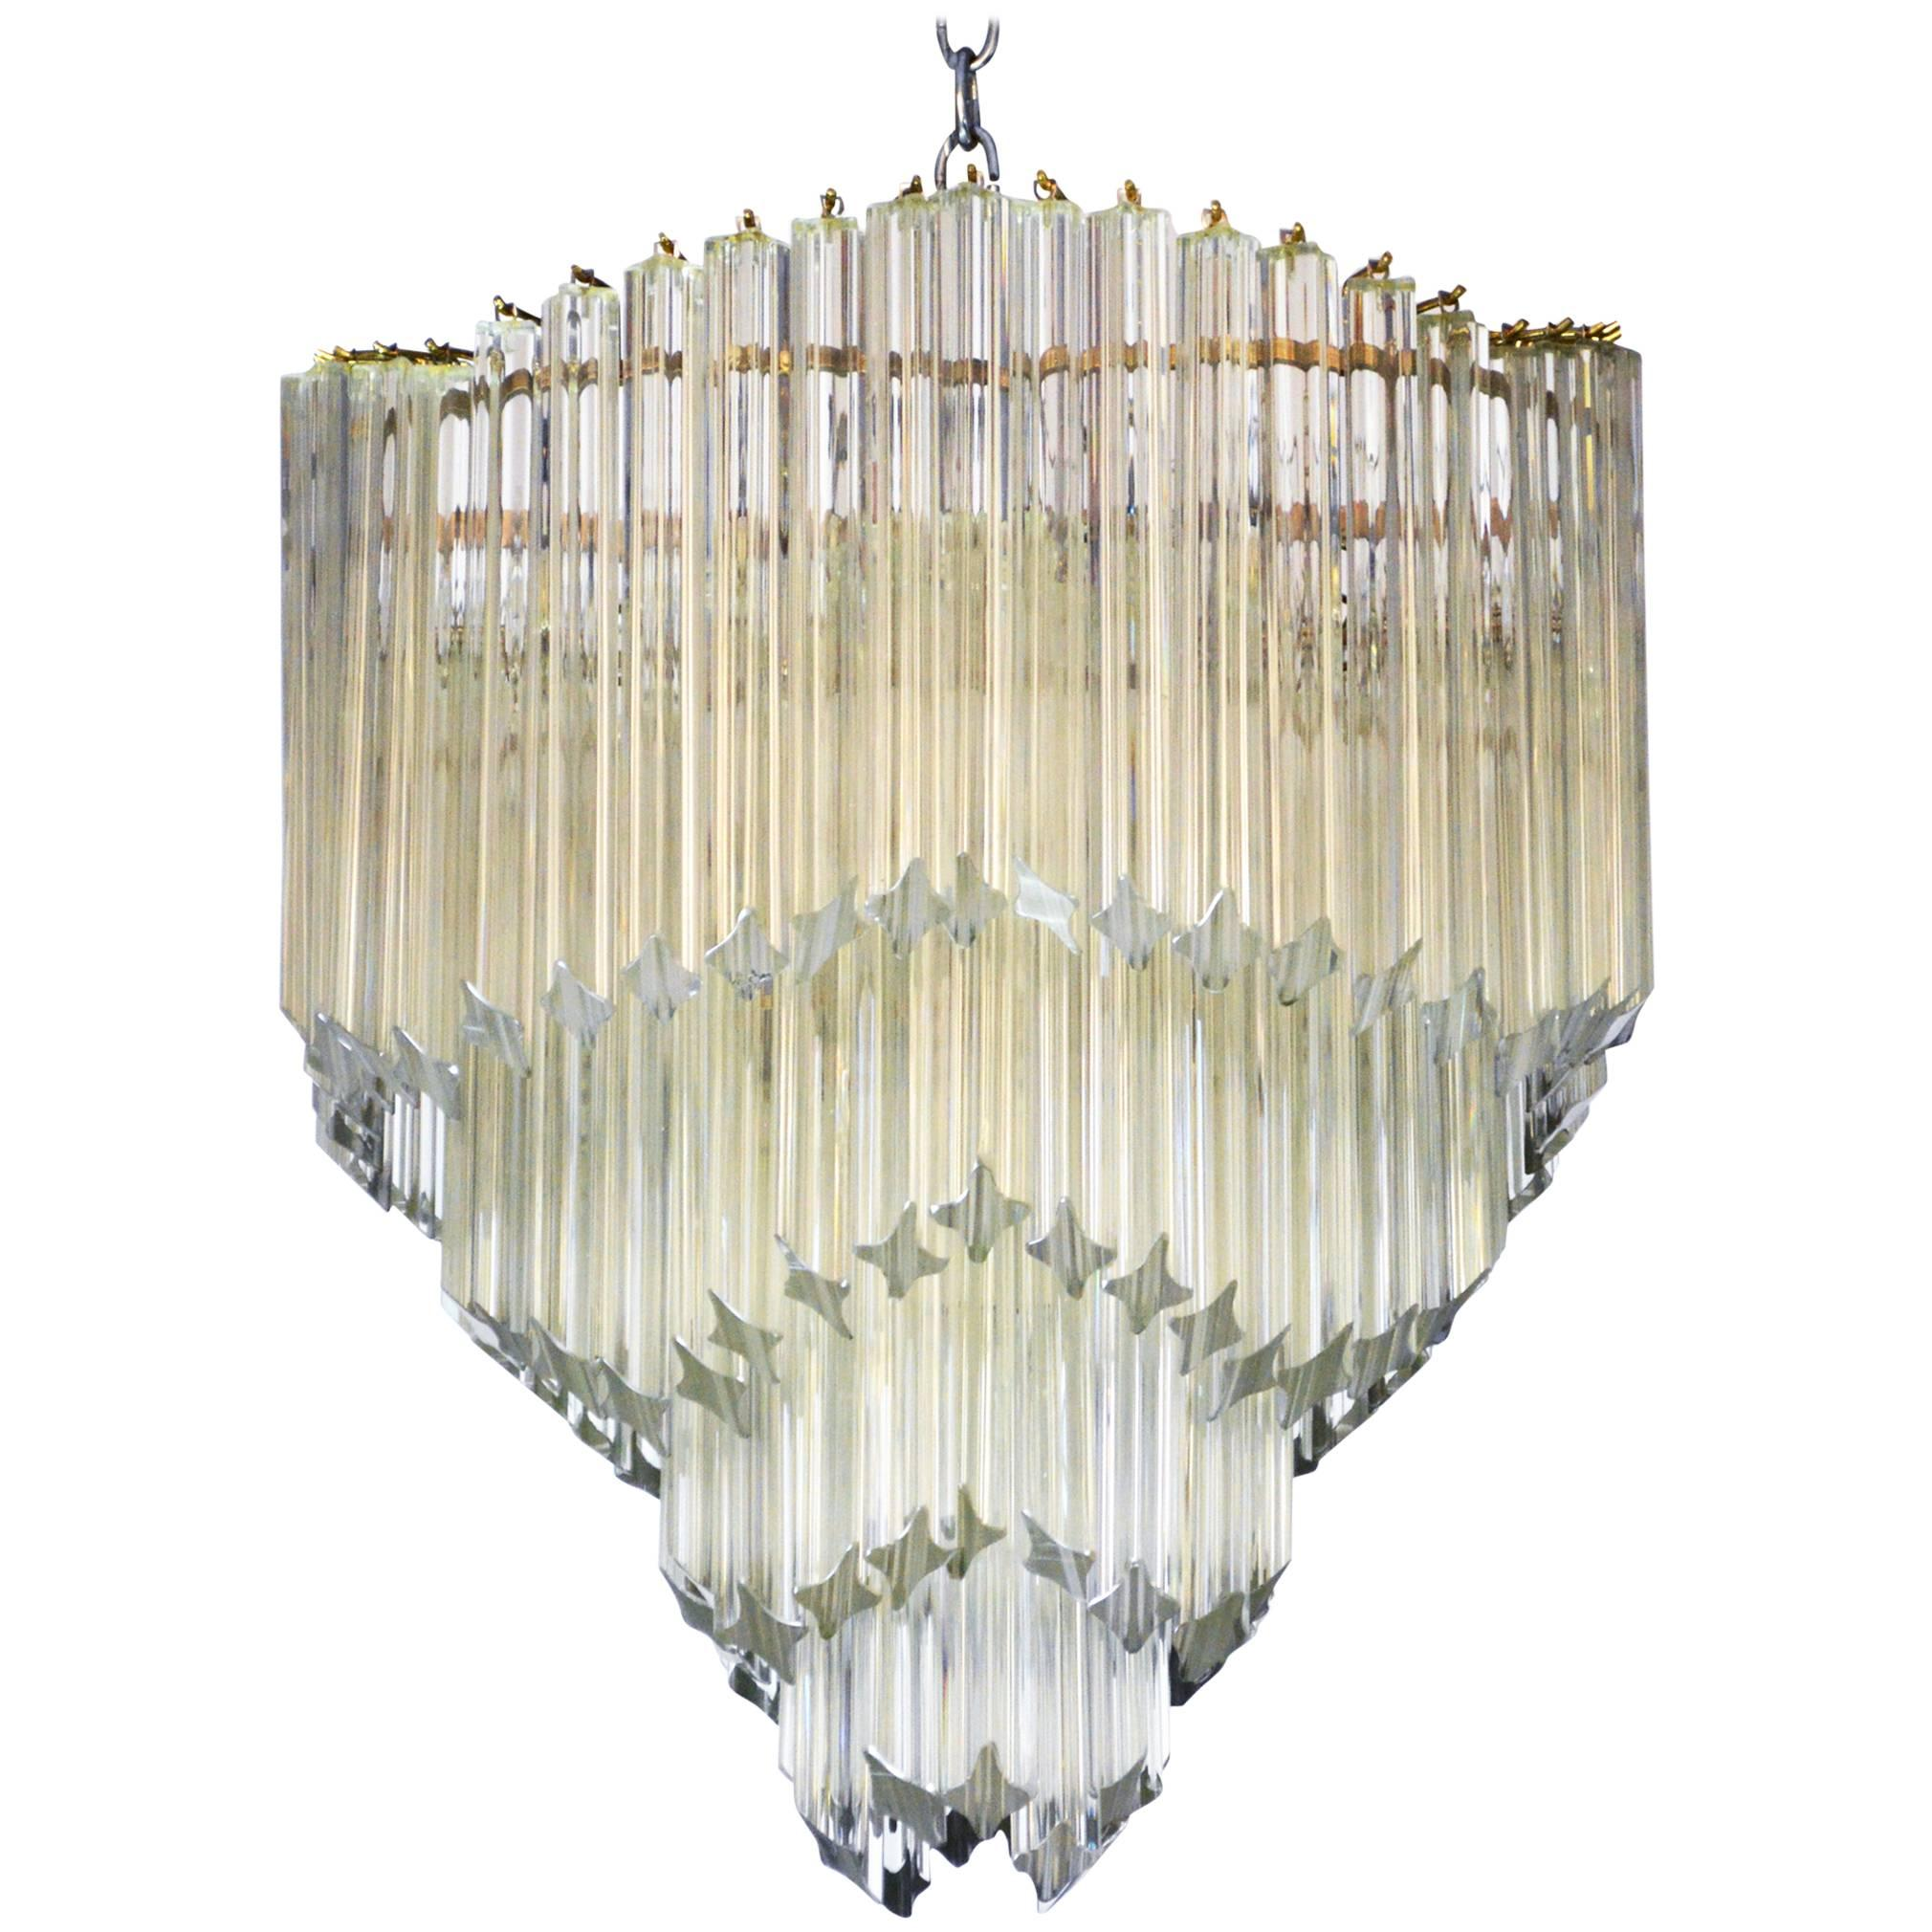 Vintage Chandelier Lighting with Crystal Glass Lamp Shades and Wooden Fittings. Mid Century Chandelier.